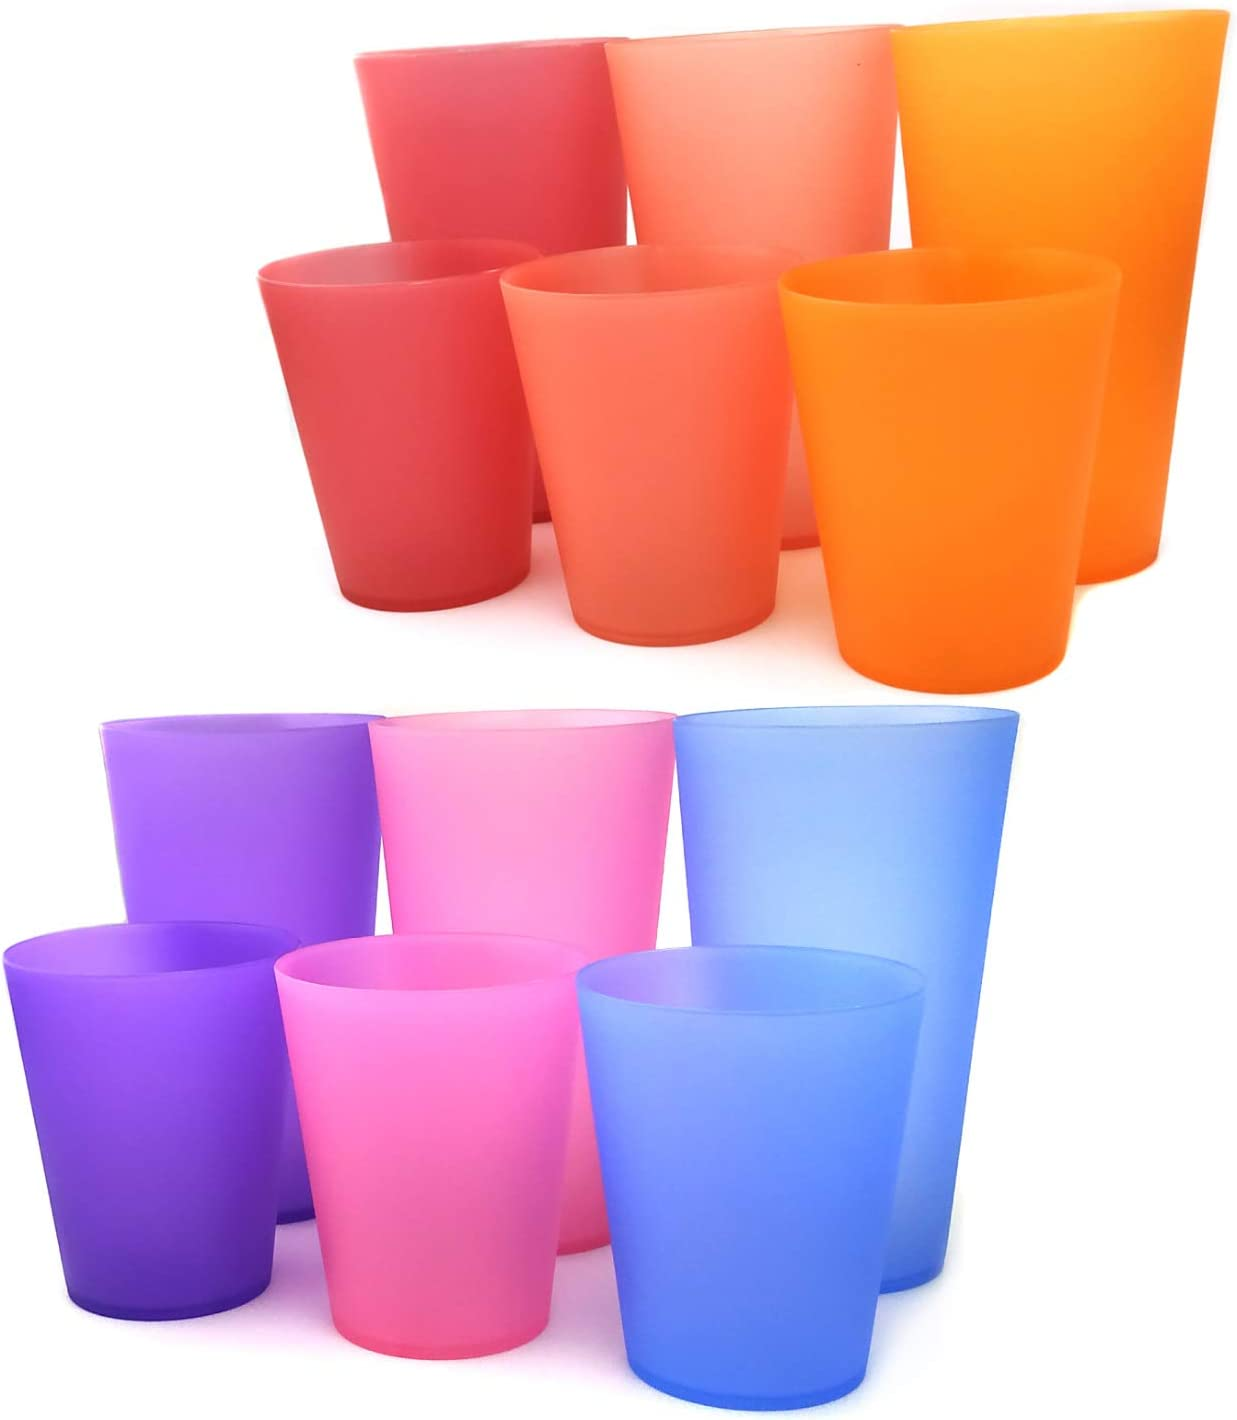 32-ounce and 18-ounce Plastic Tumblers/Drinking Glasses/Party Cups/Iced Tea Glasses Set of 12,6 Assorted Colors| Unbreakable, Dishwasher Safe, BPA Free